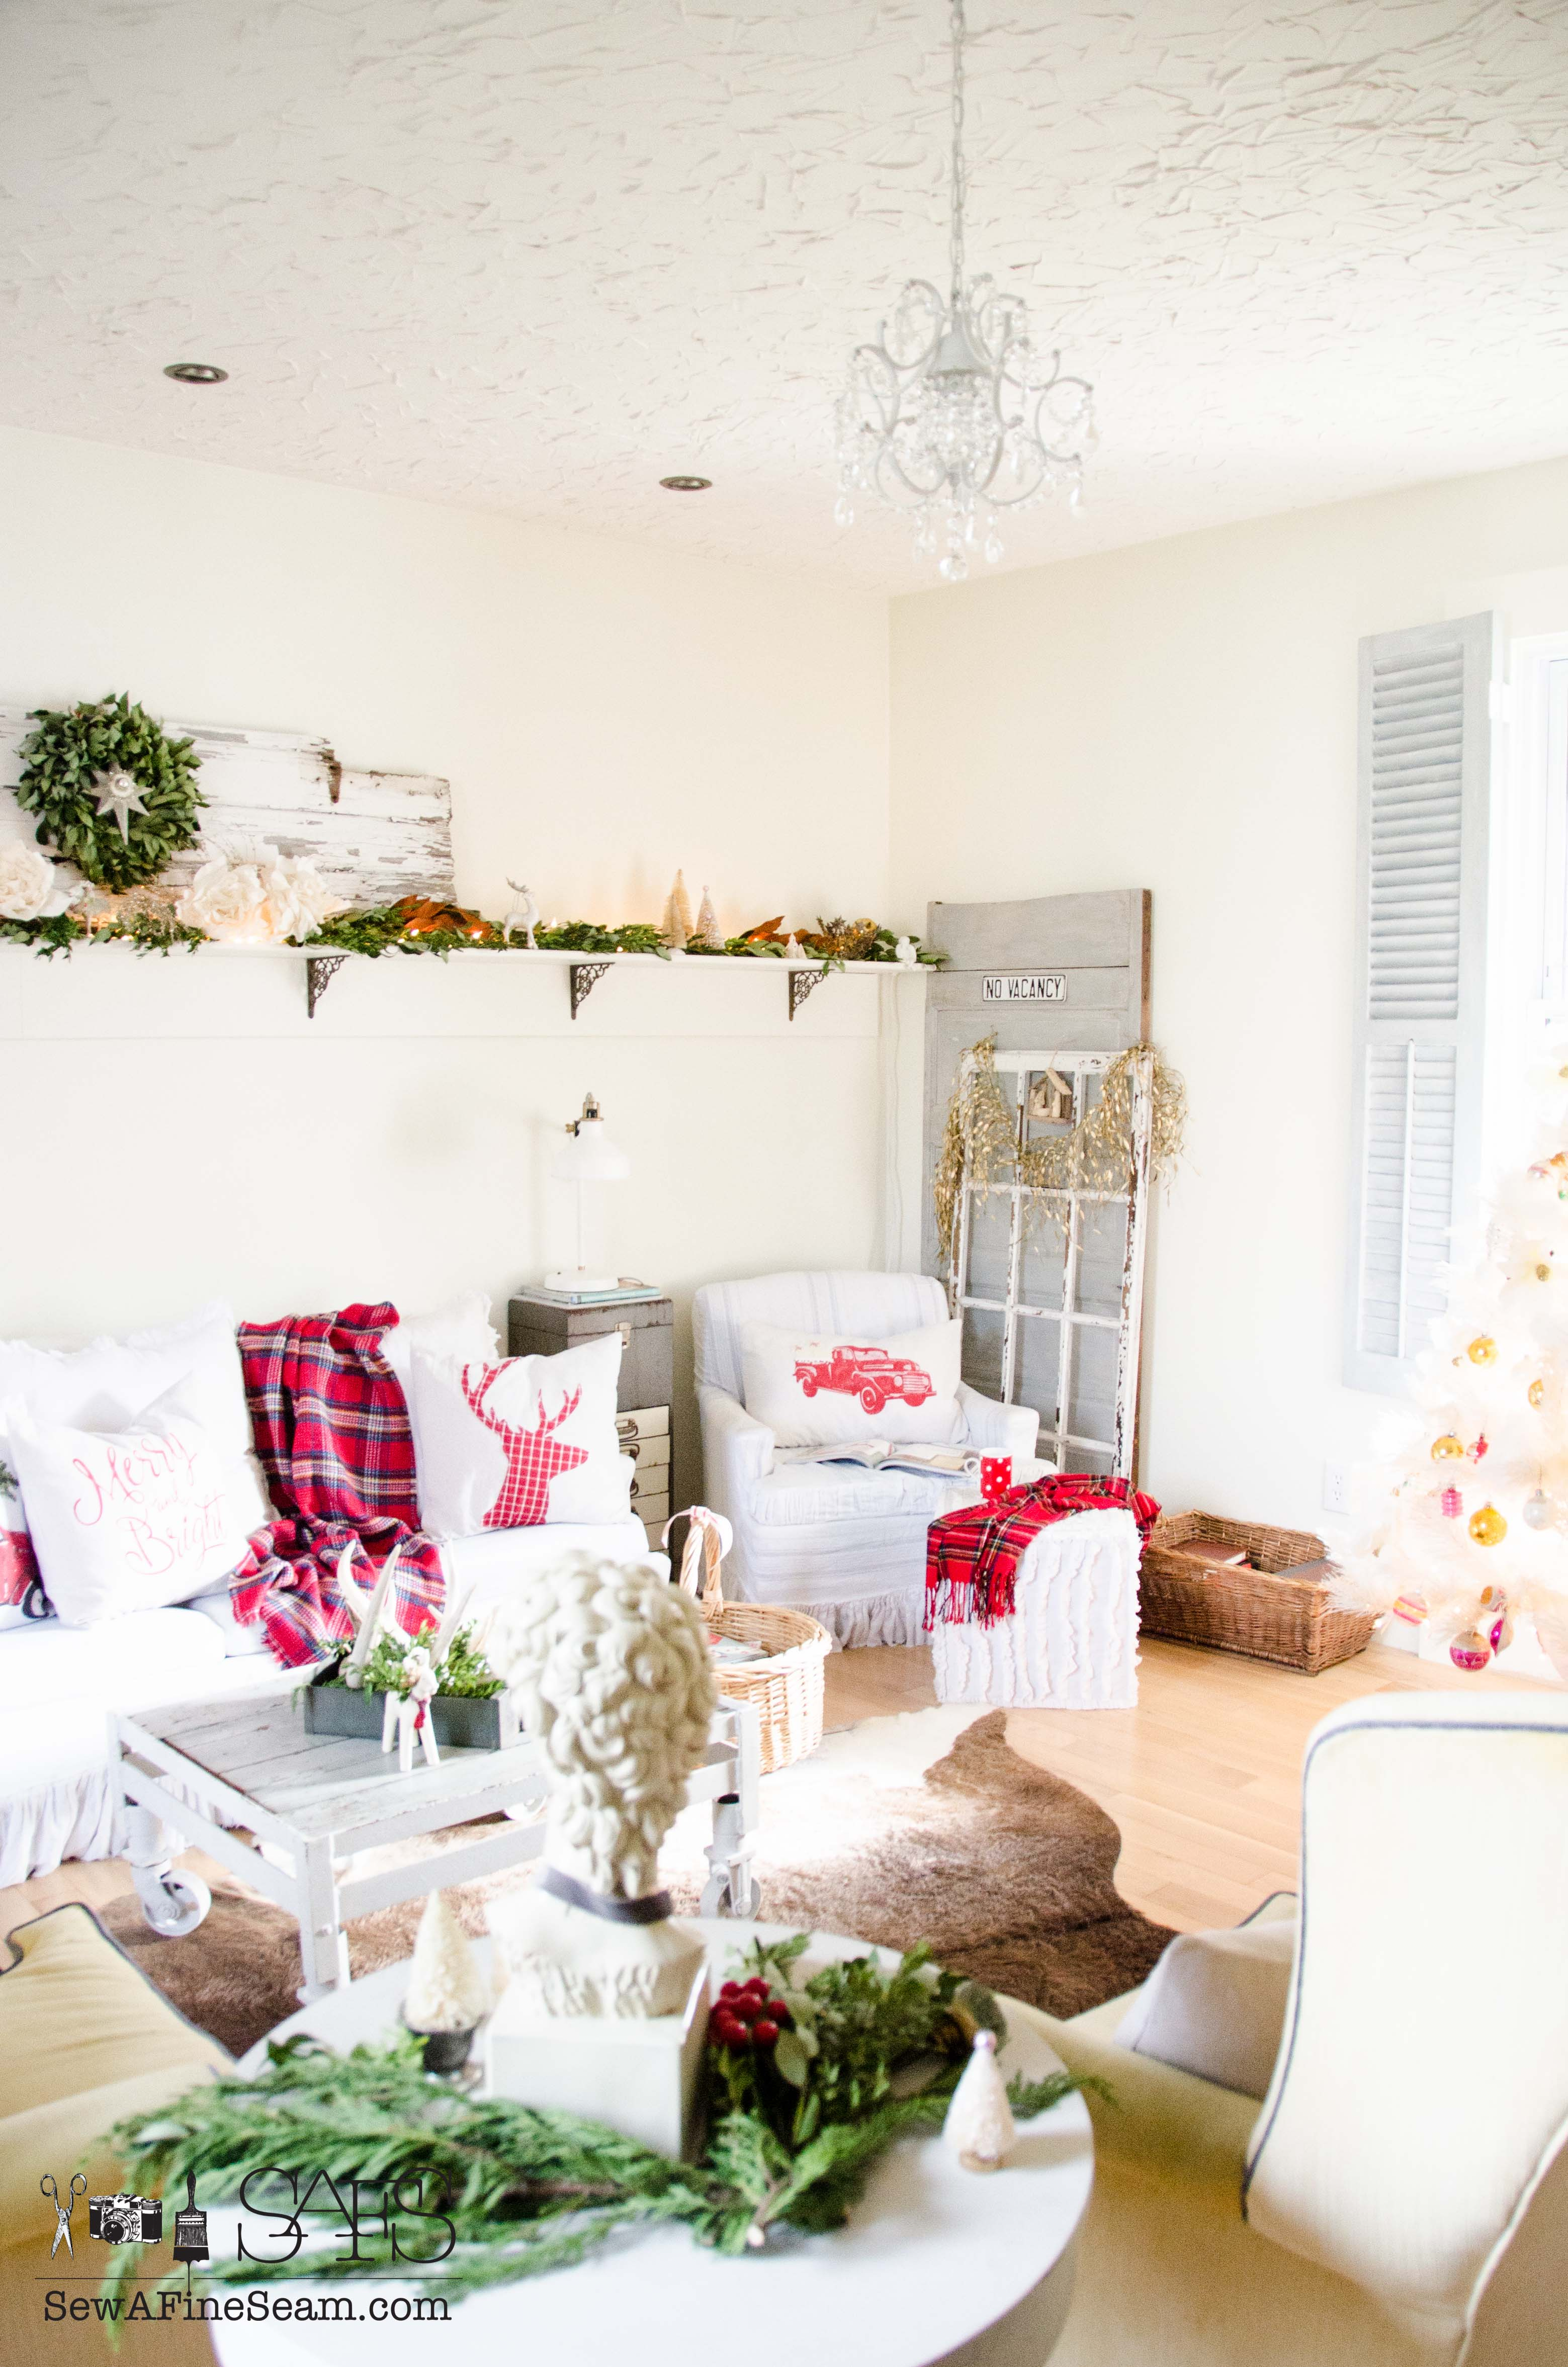 Christmas Decor - the Living Room | Sew a Fine Seam